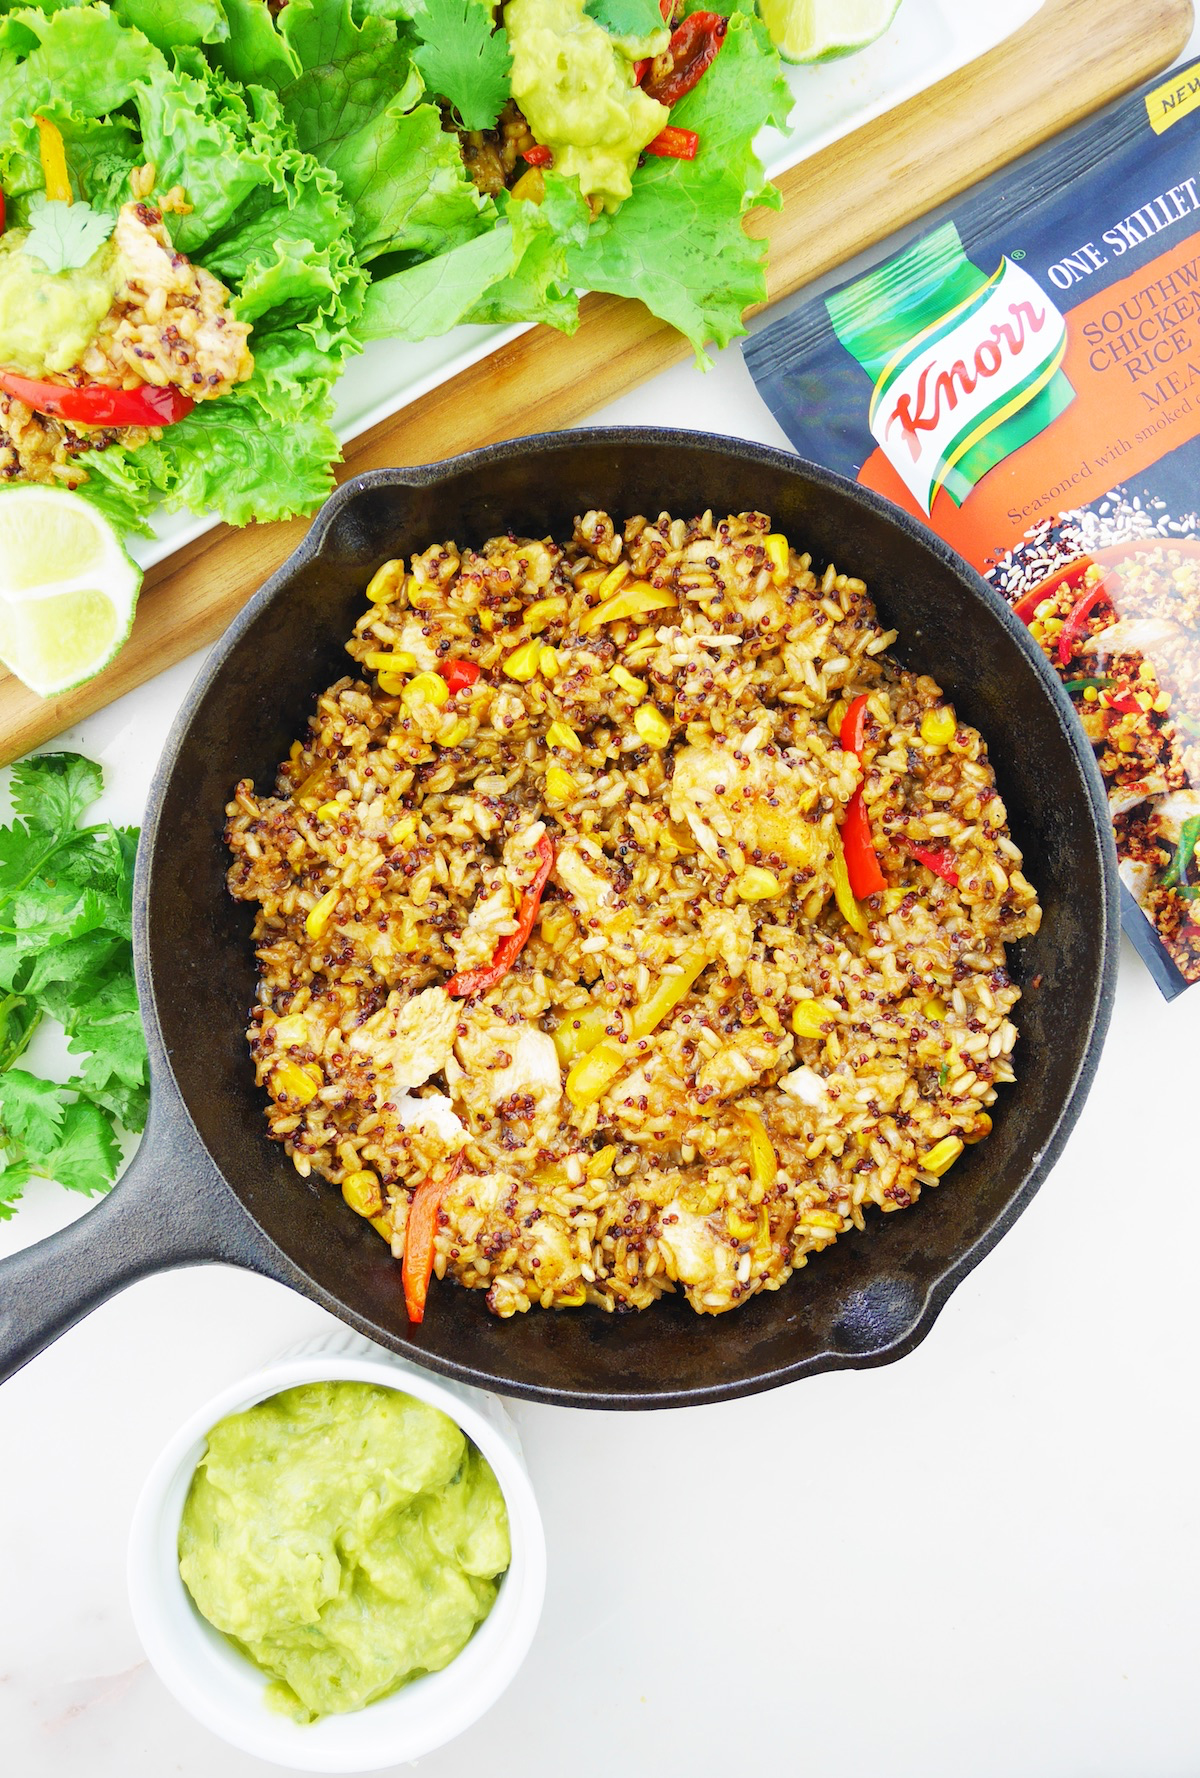 Knorr One Skillet Meal Southwestern Chicken Brown Rice Quinoa meal starter